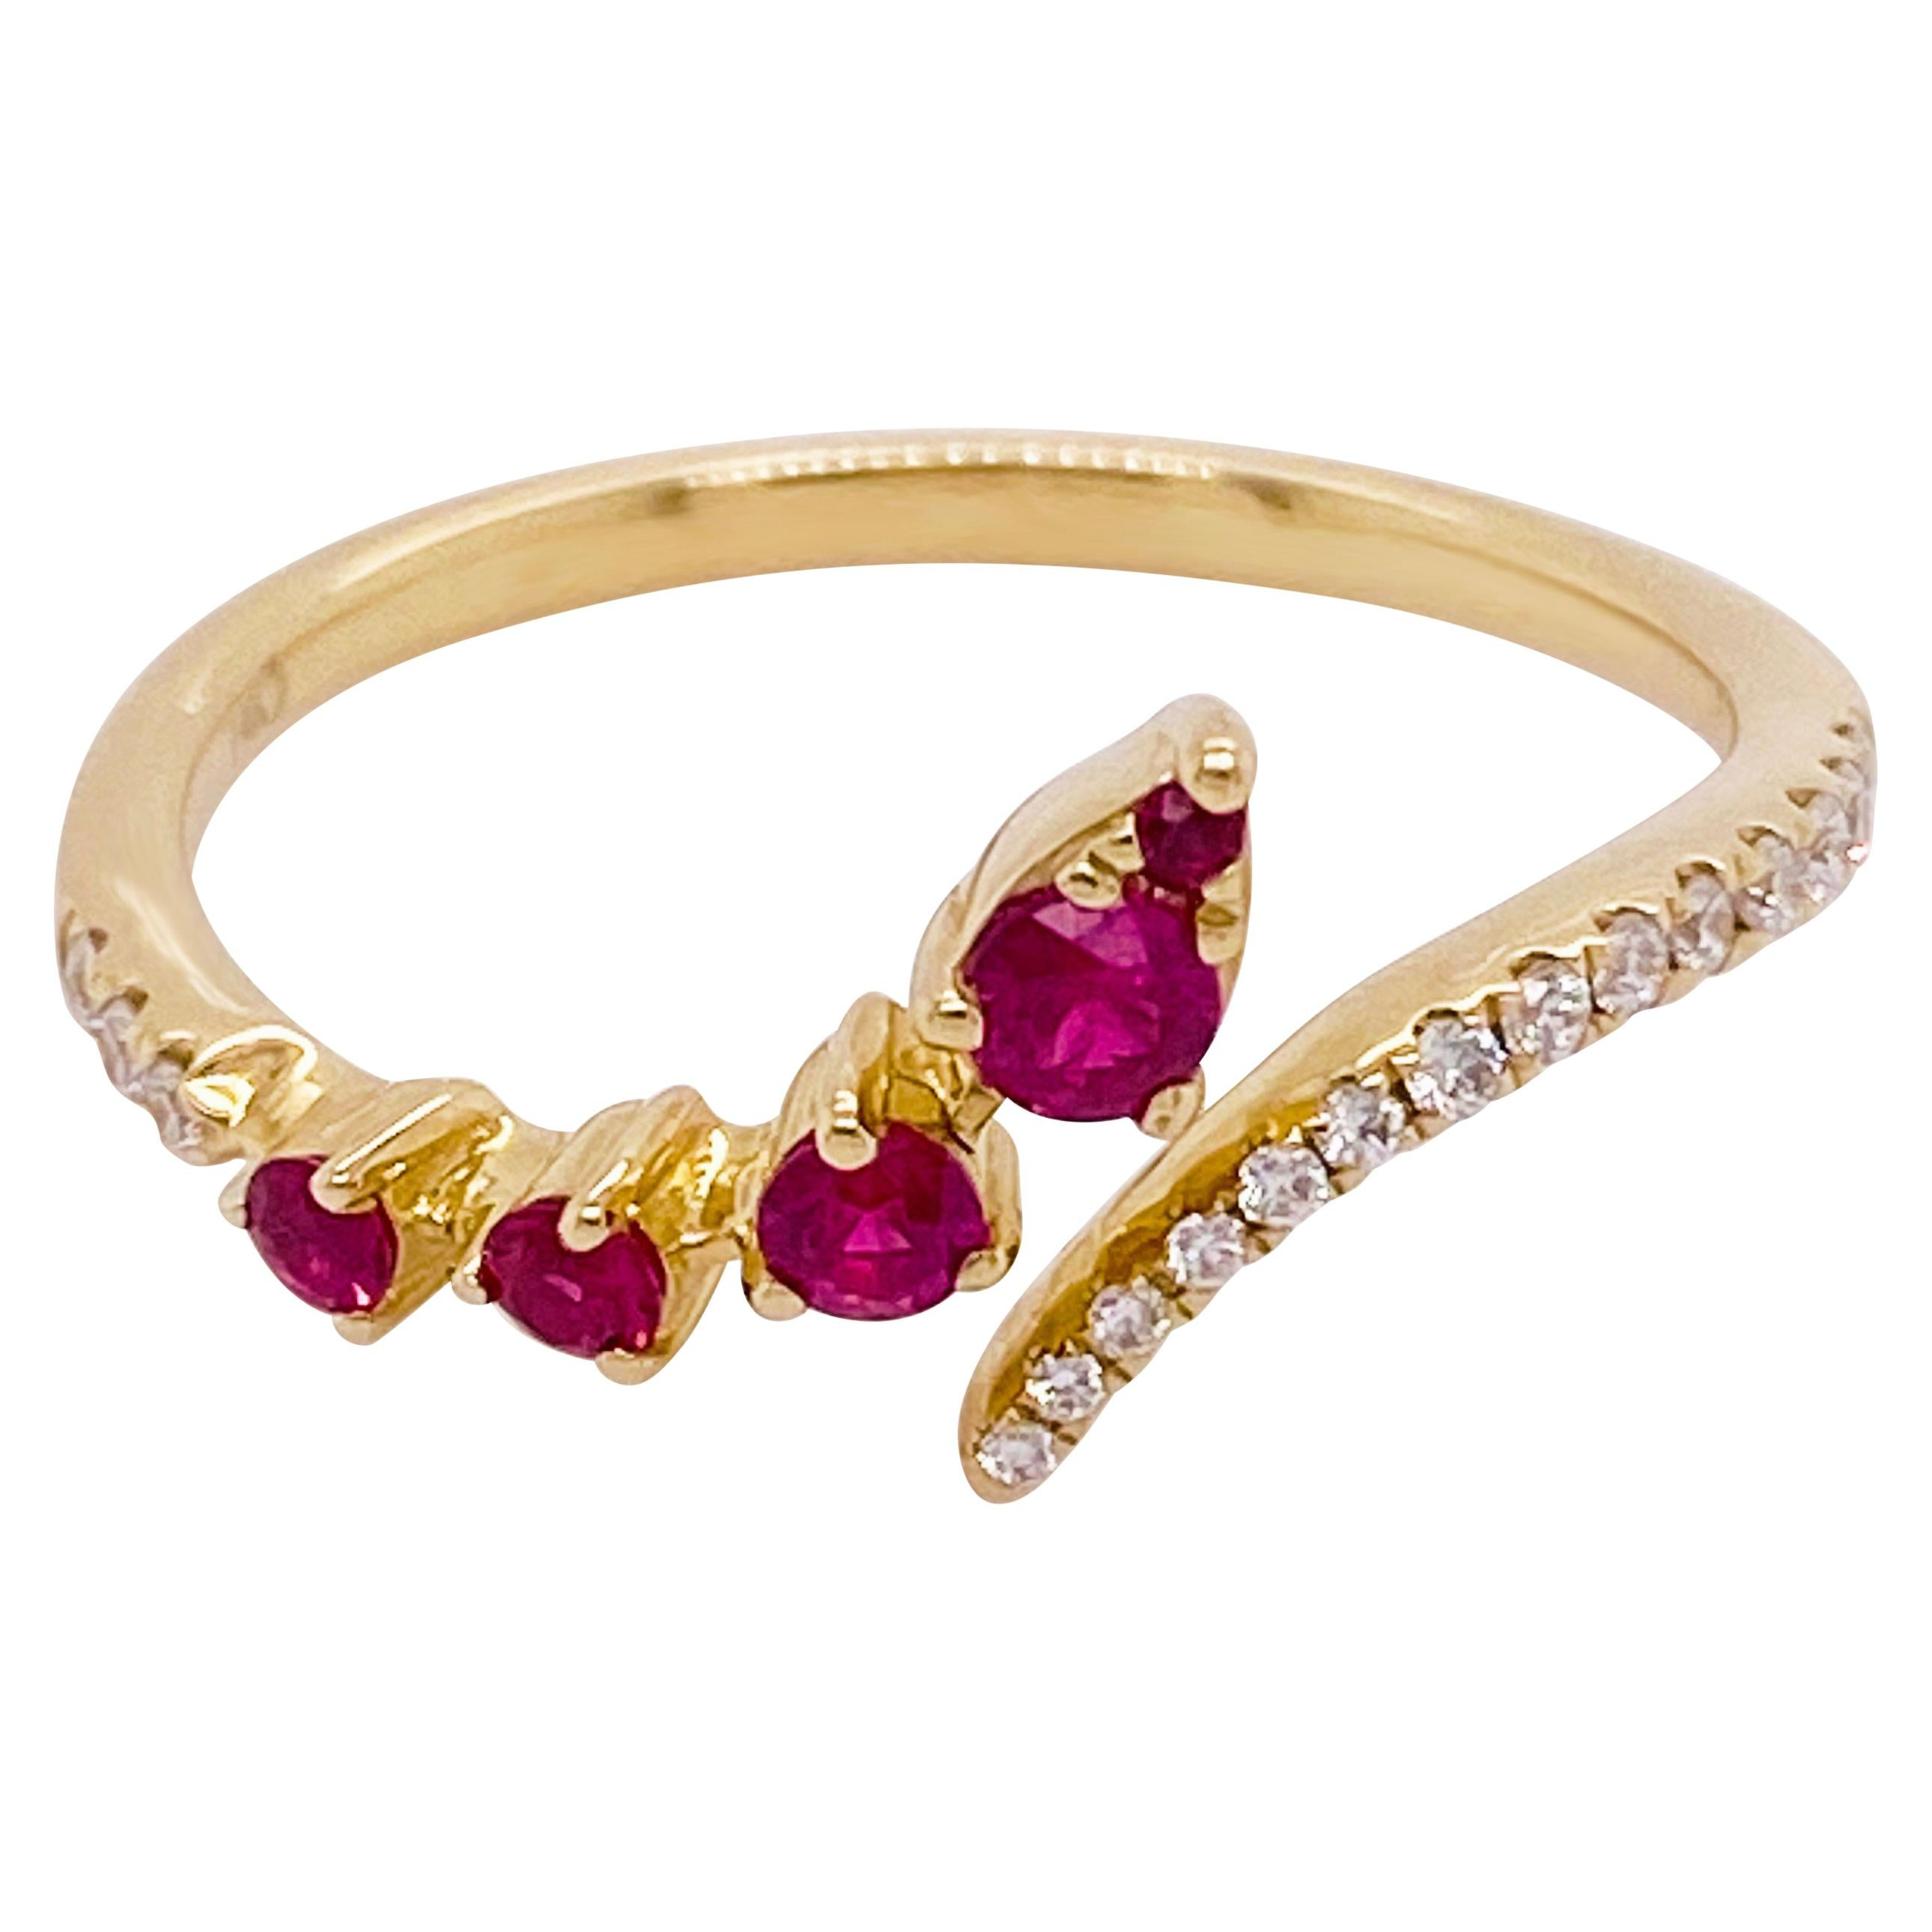 Ruby Diamond Ring, Red Ruby, 14k Yellow Gold, Bypass, Stack, Fashion, Freeform